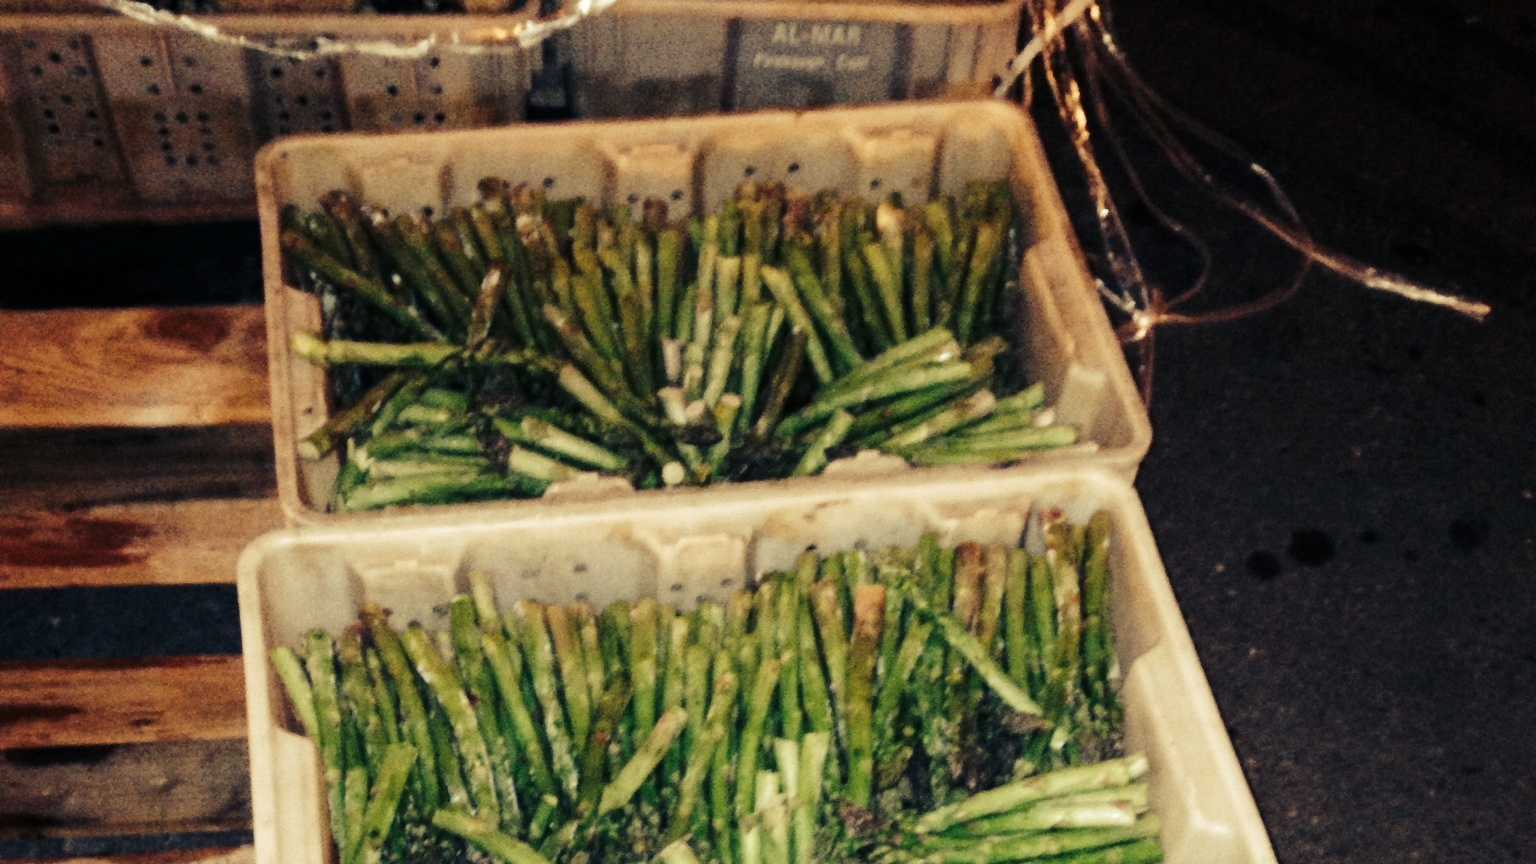 The festival will feature new vendors, activities and of course, plenty of asparagus. Twenty-five thousand pounds, to be exact. The signature vegetable will be showcased in countless dishes, drinks and even ice cream desserts.